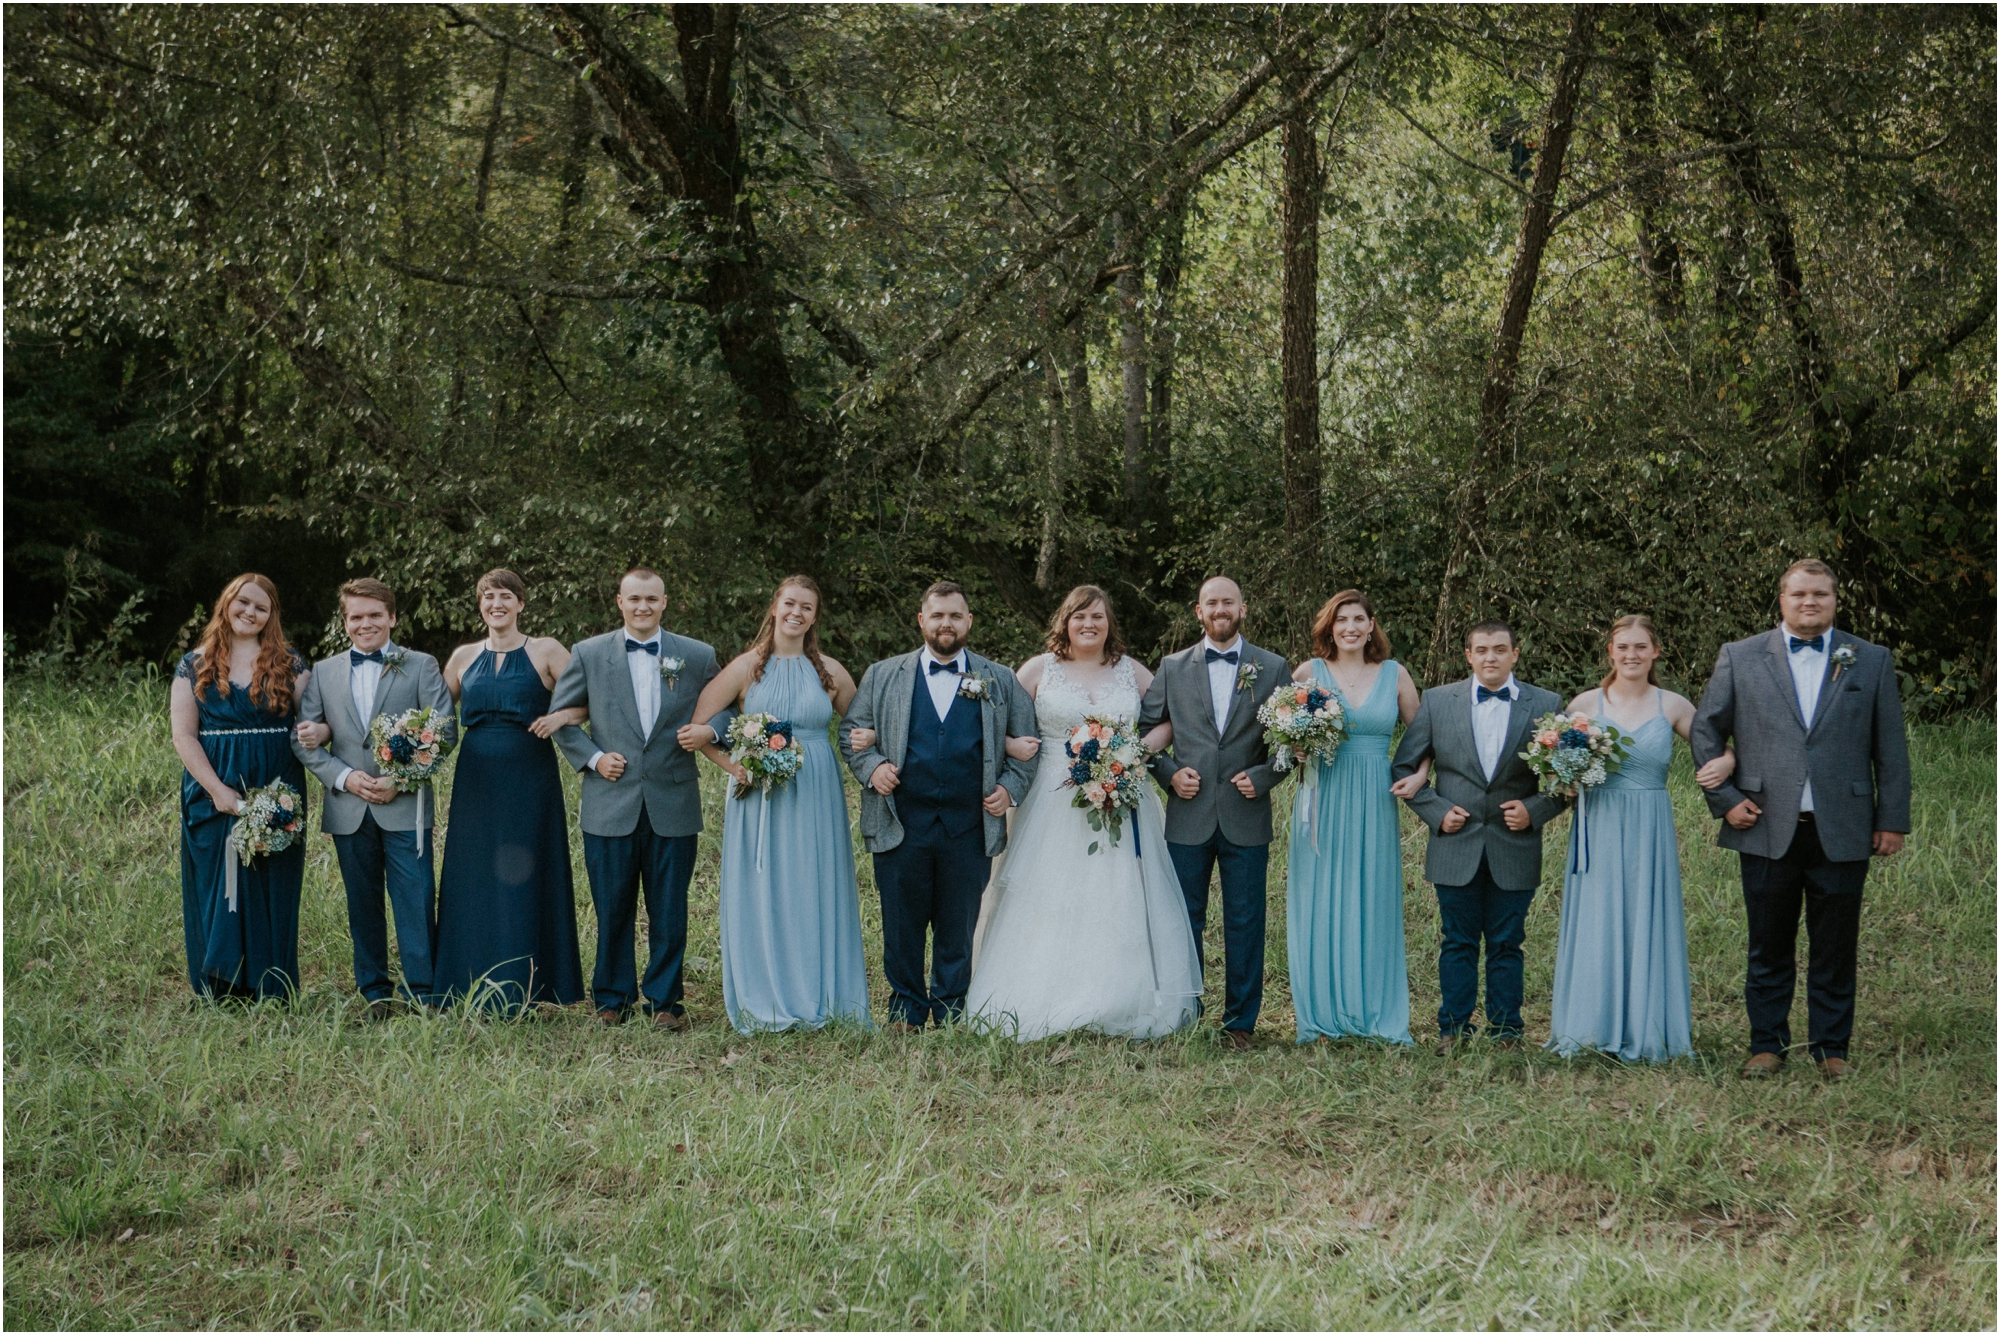 caryville-robbins-middle-tennessee-intimate-cozy-fall-navy-rustic-backyard-wedding_0067.jpg